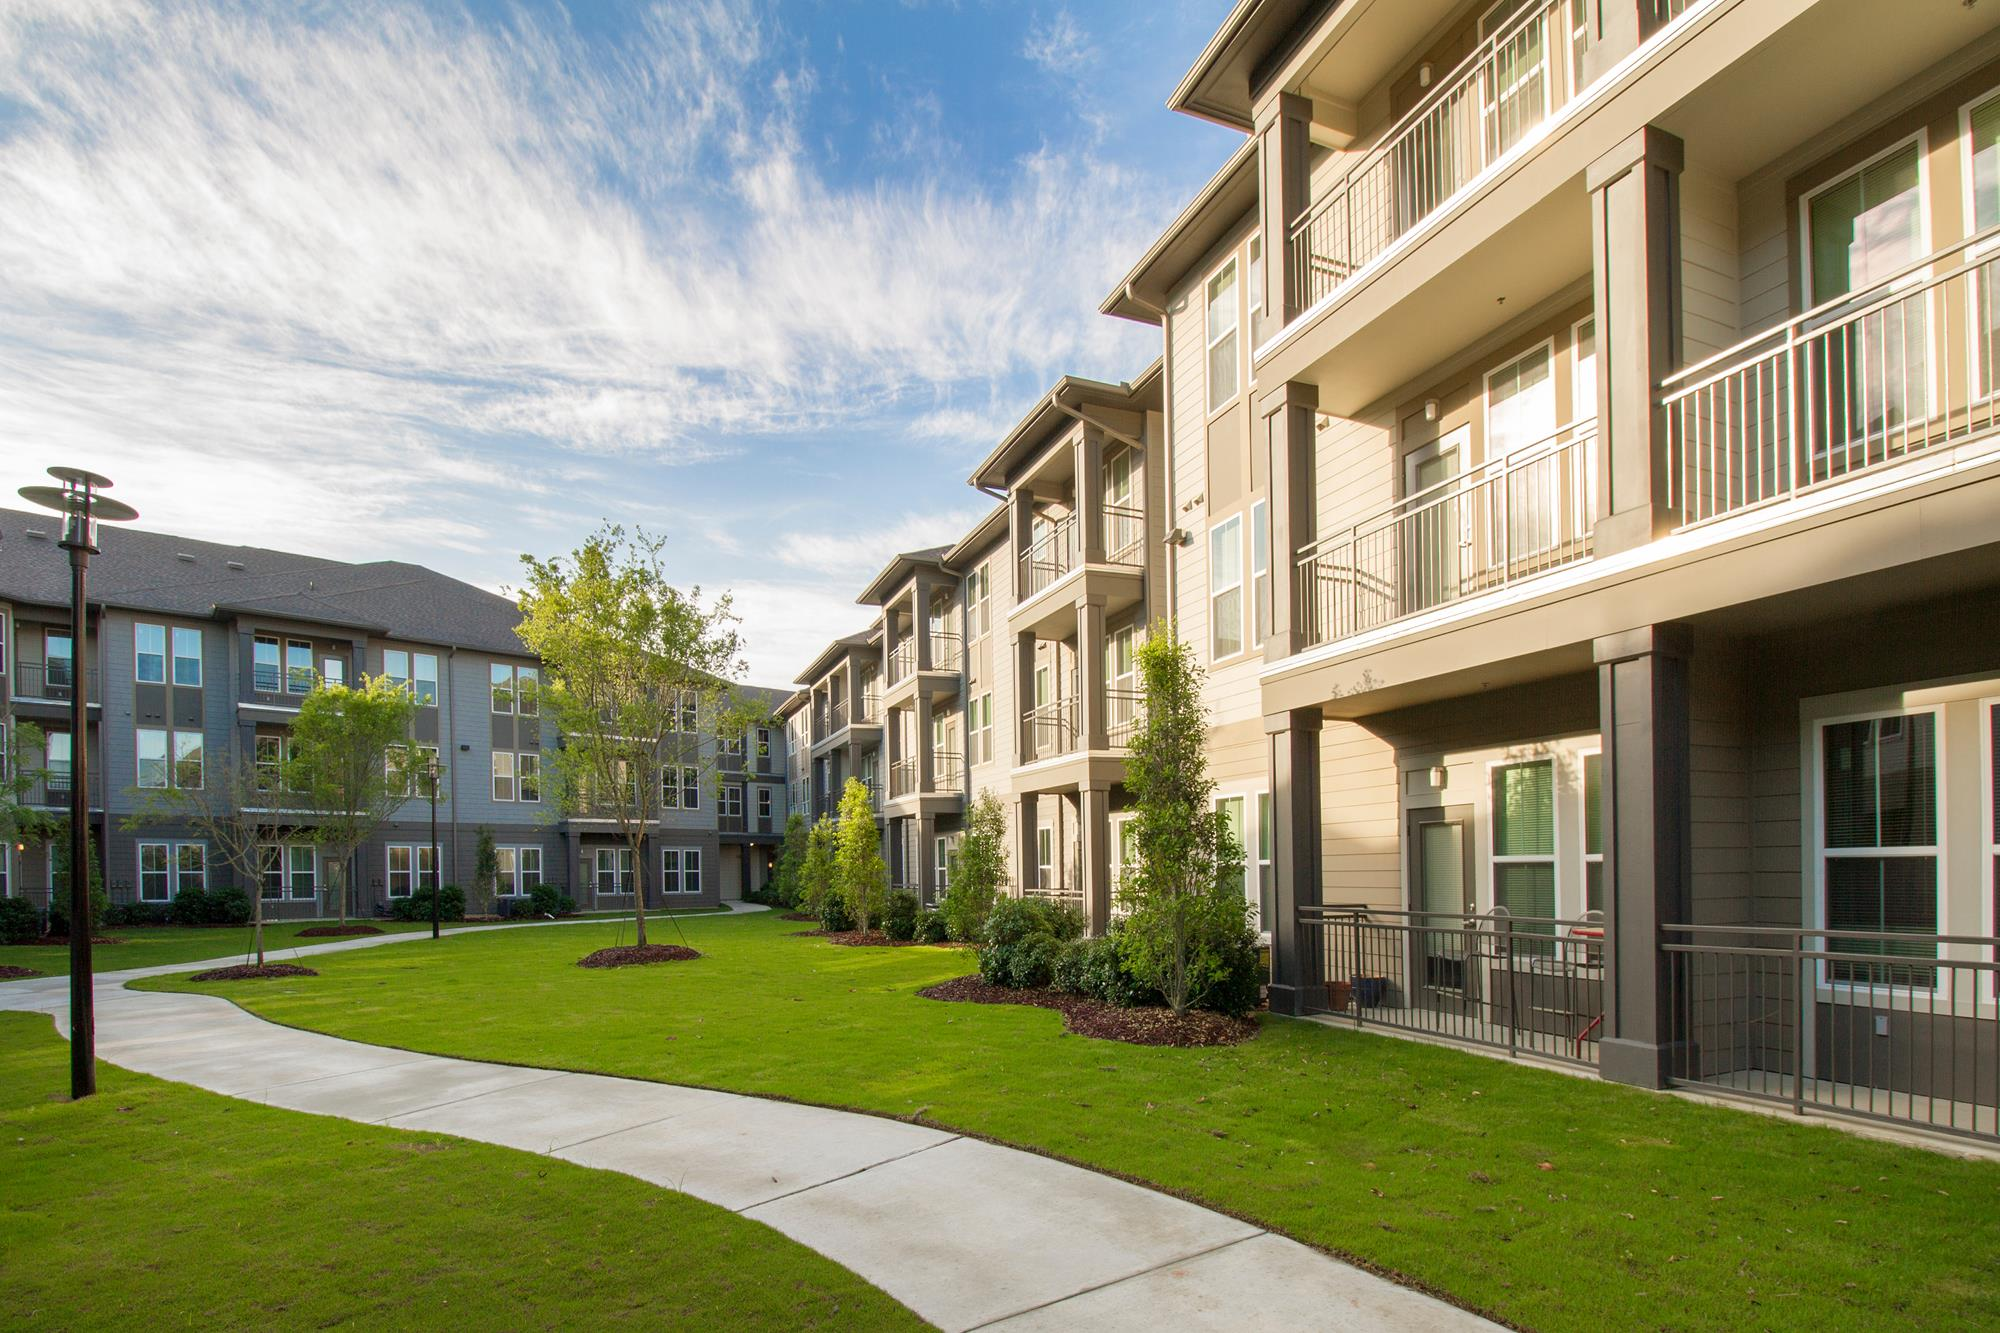 Comfortable Apartments with Thoughtful Amenities at The District, Baton Rouge, LA